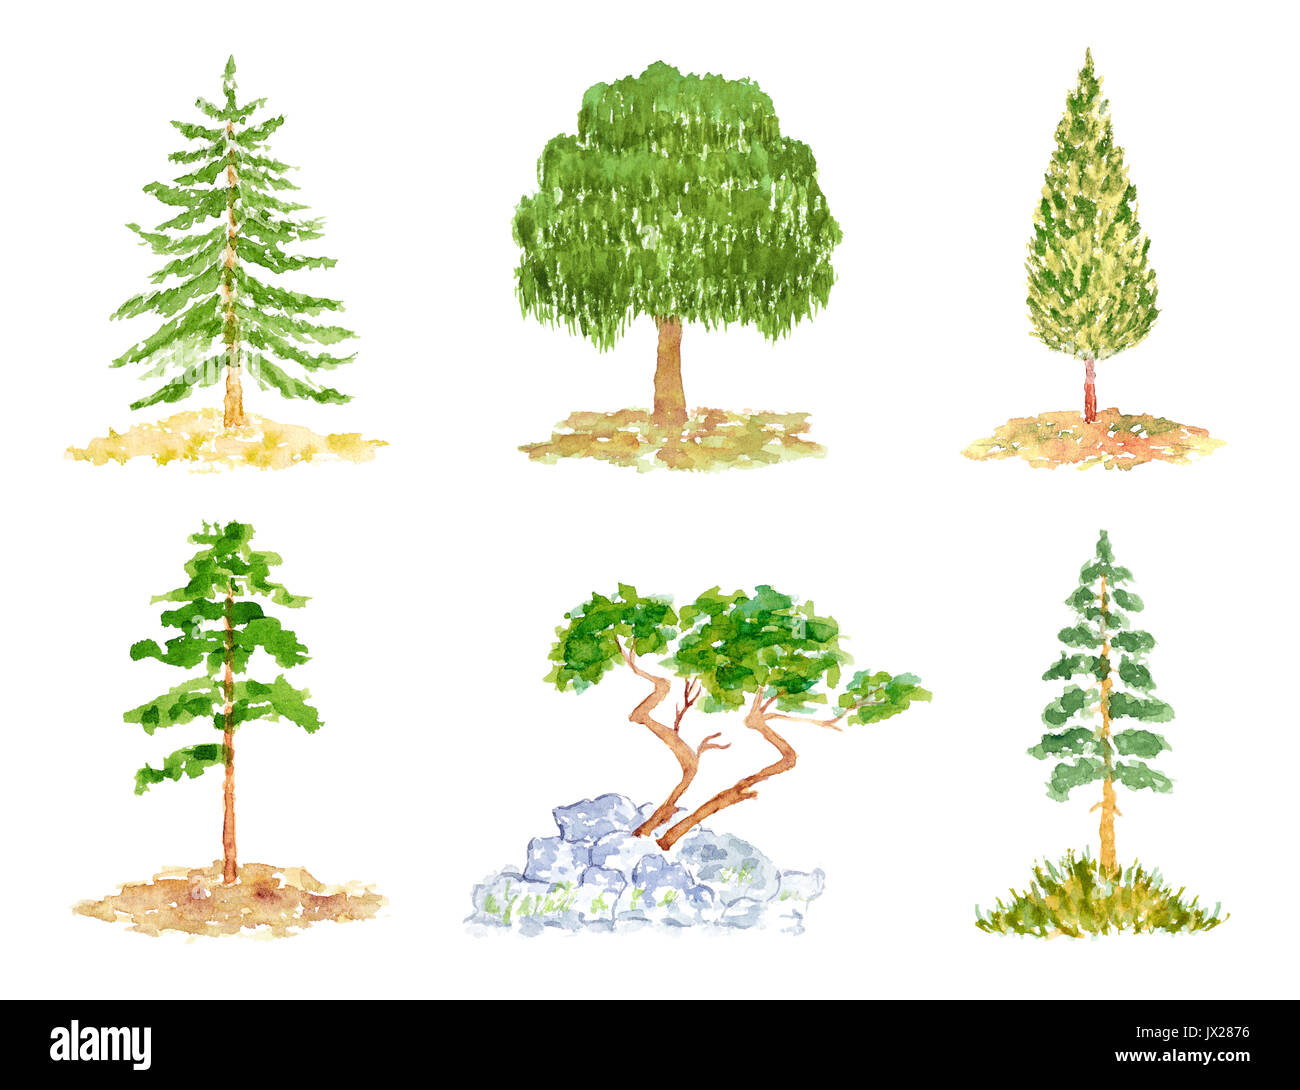 the difference between deciduous and coniferous trees